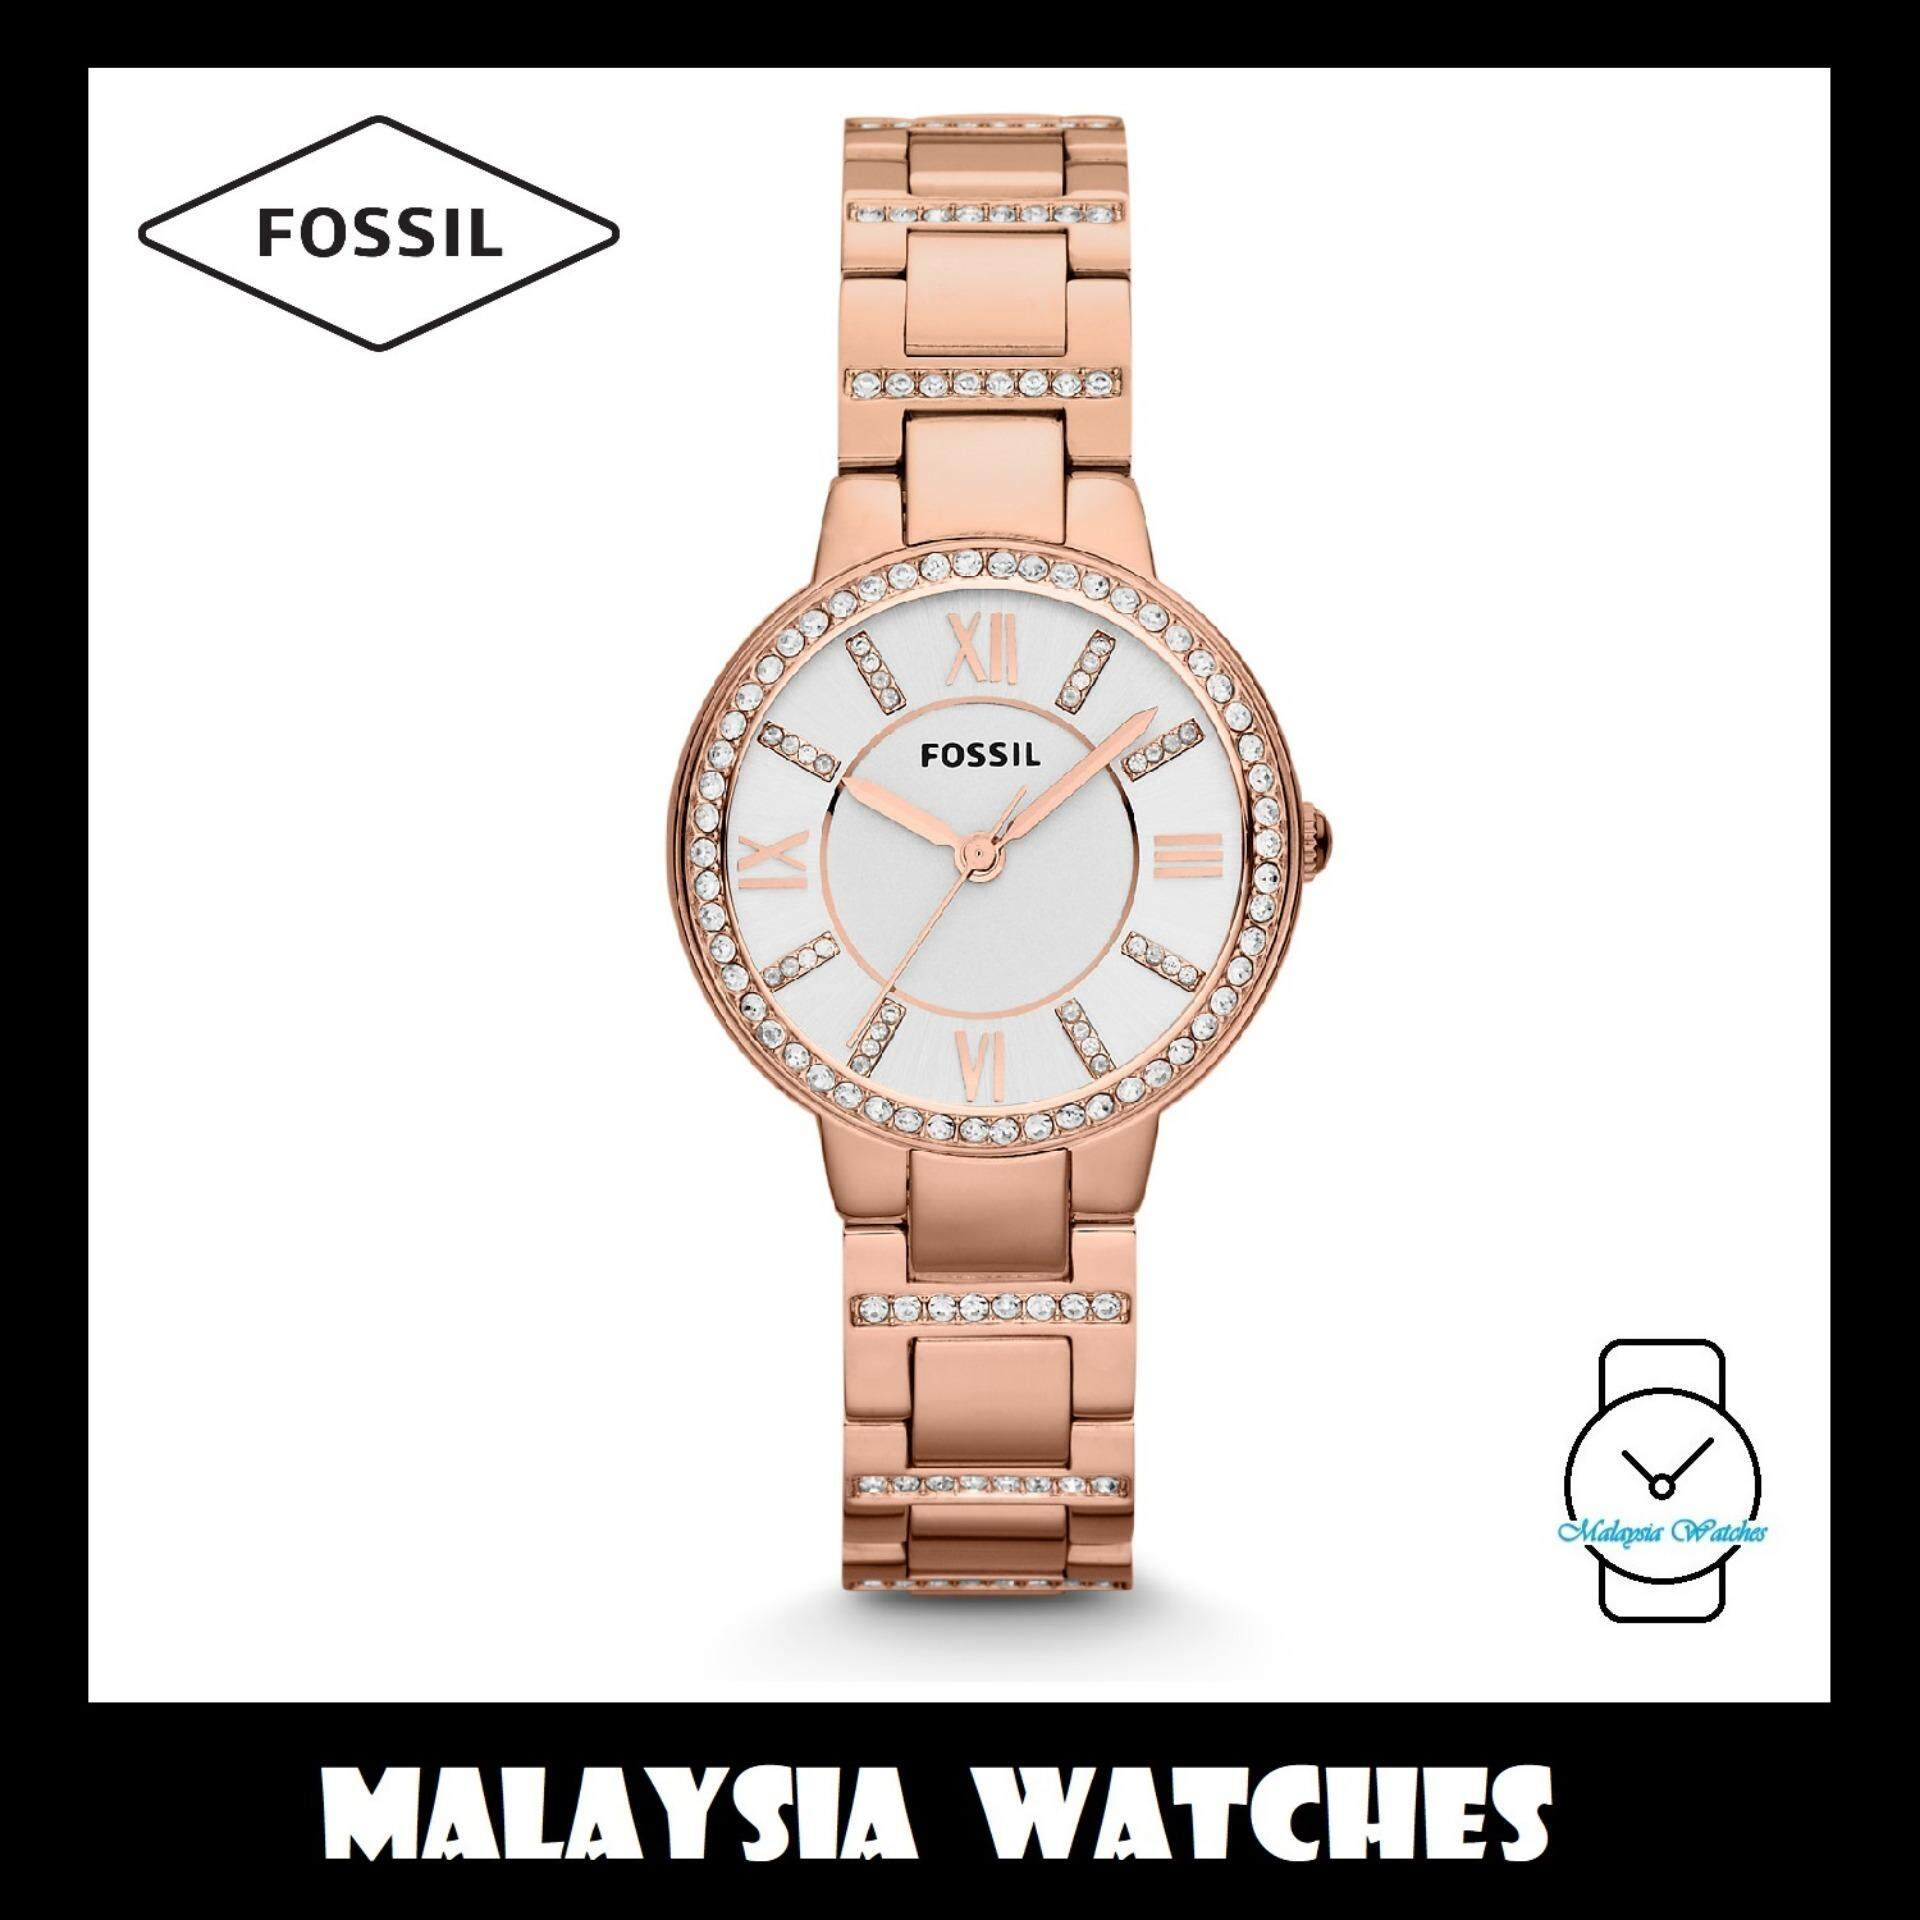 Fossil Women Watches Price In Malaysia Best Es3225 Jam Tangan Wanita Original Es3284 Virginia Three Hand Rose Gold Stainless Steel Watch 100